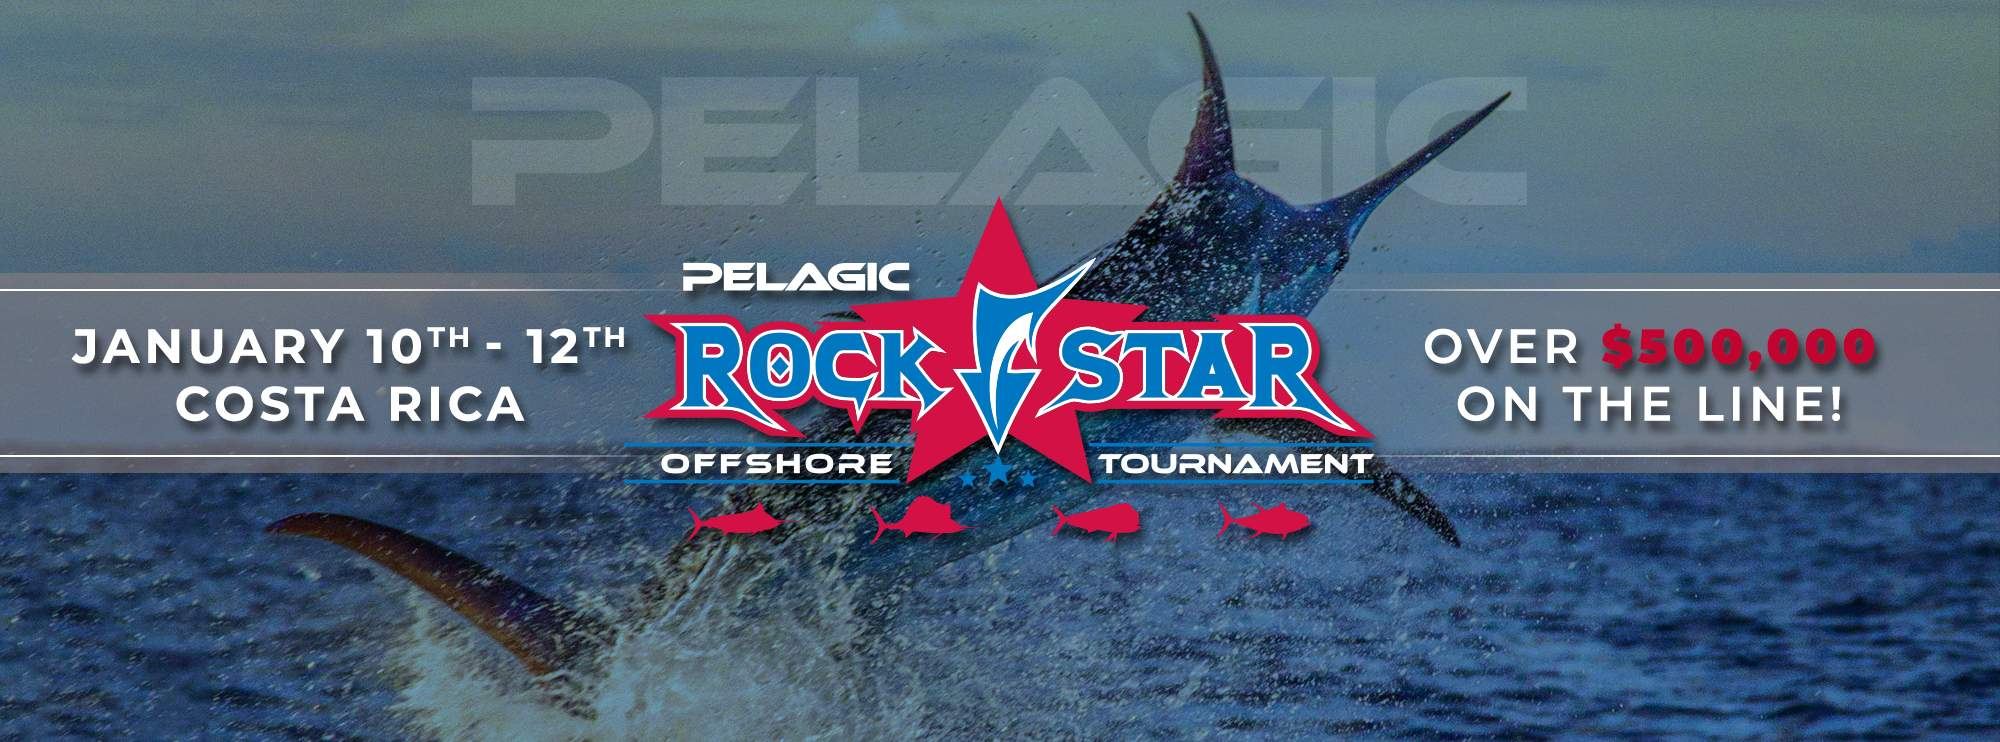 2020 Pelagic Rockstar Offshore Tournament Costa Rica